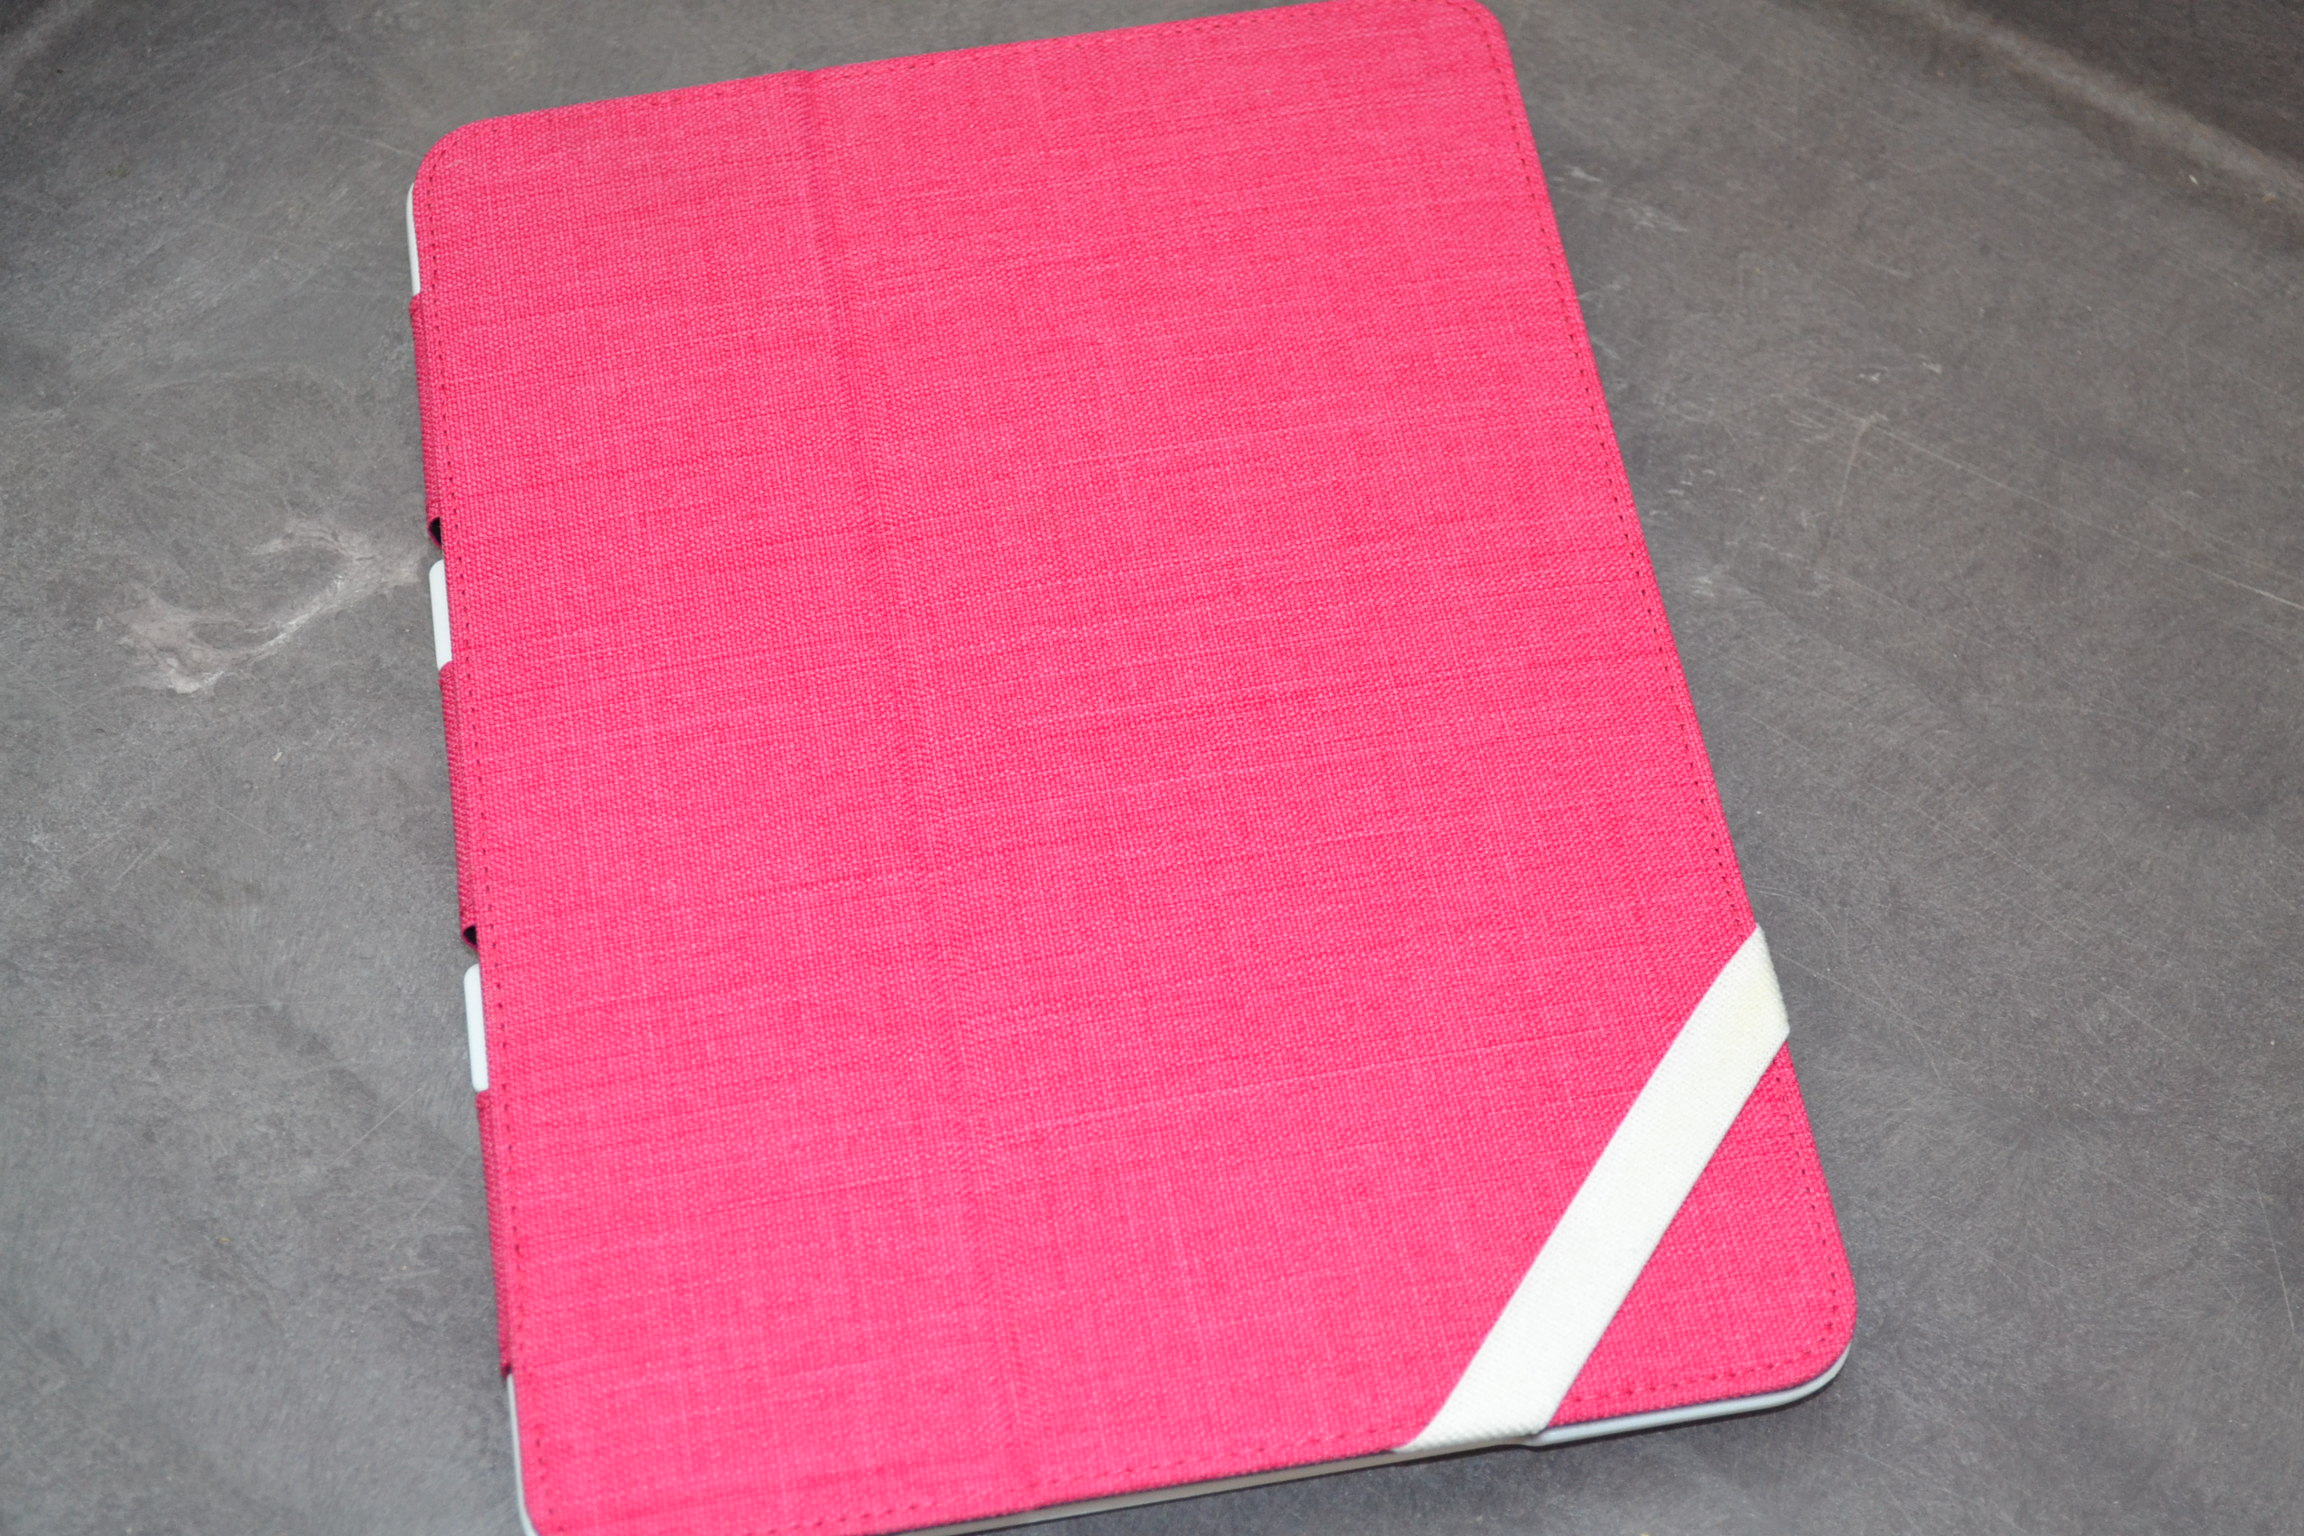 Case Logic Snap View Folio For Galaxy Tab 3 Phlox FSG-1073 Cover Pink White Fold